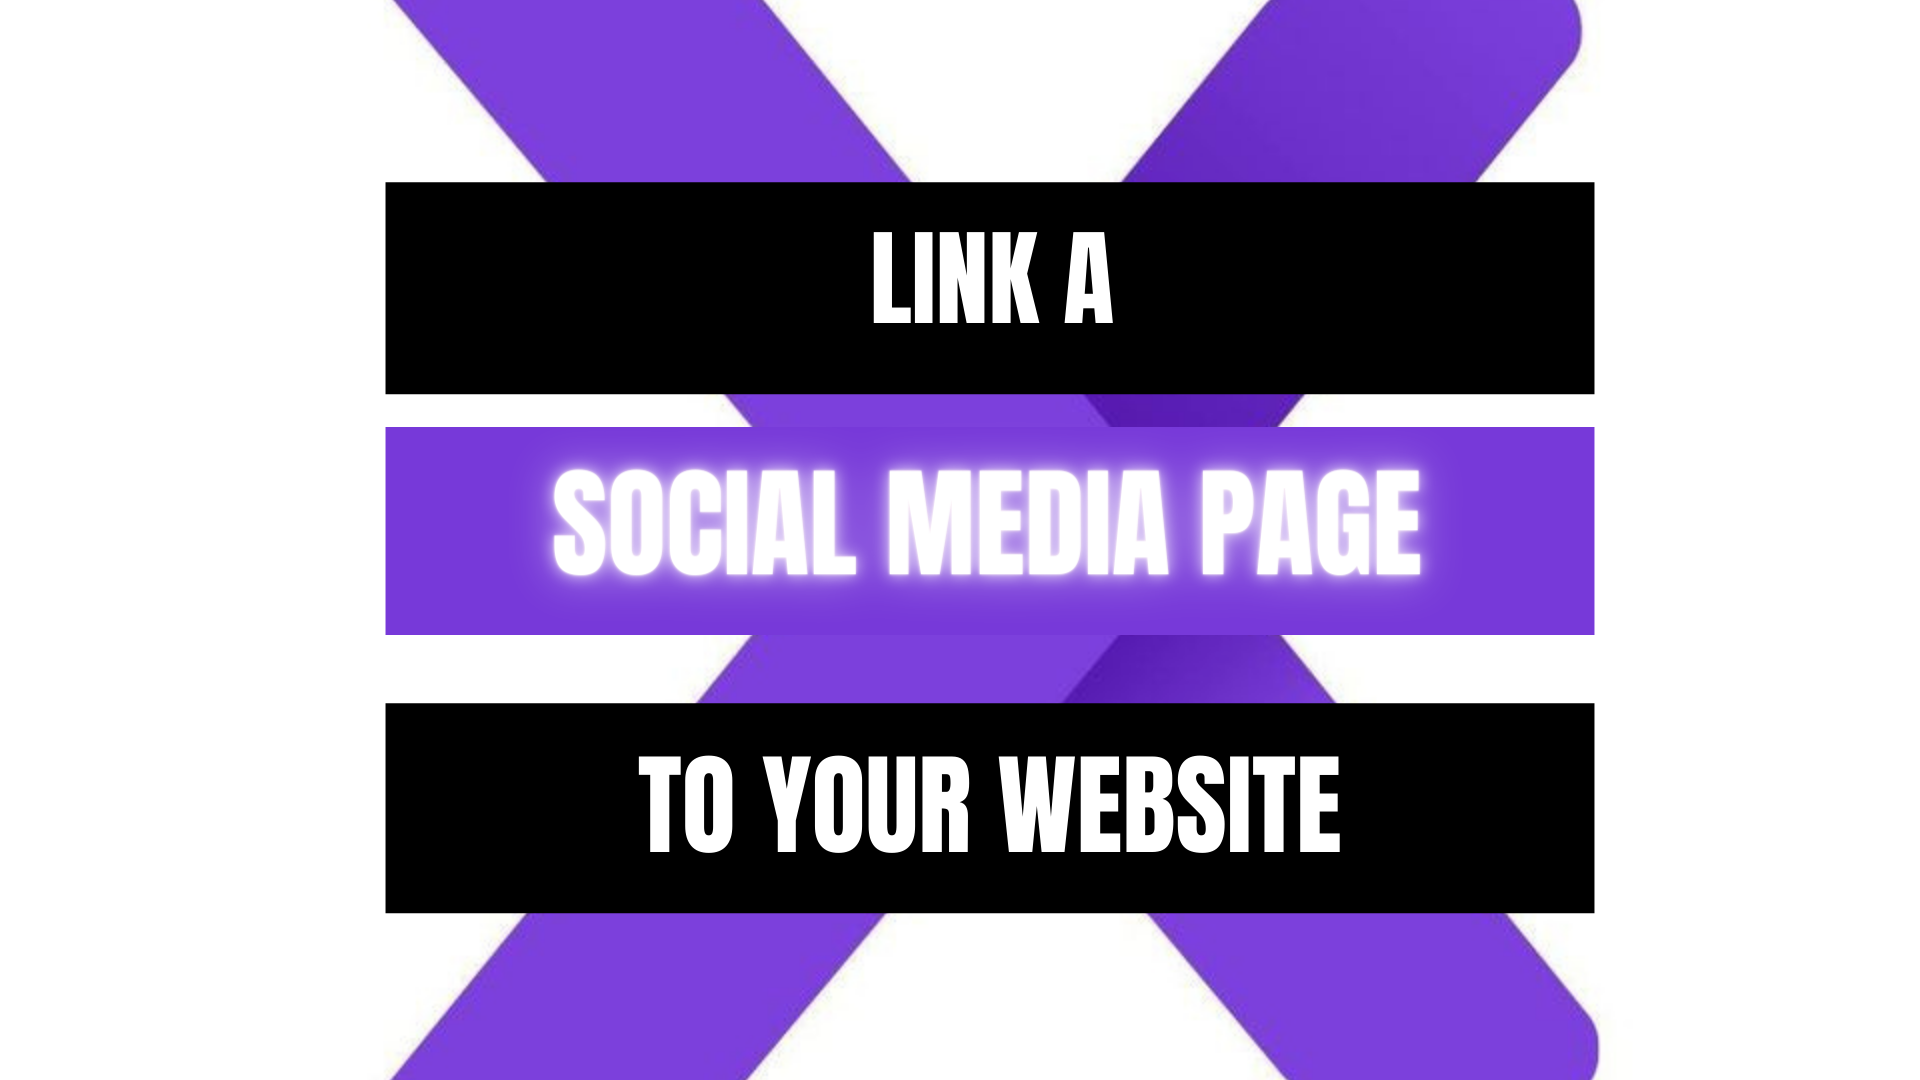 Peekaboox - Link social media page to your website